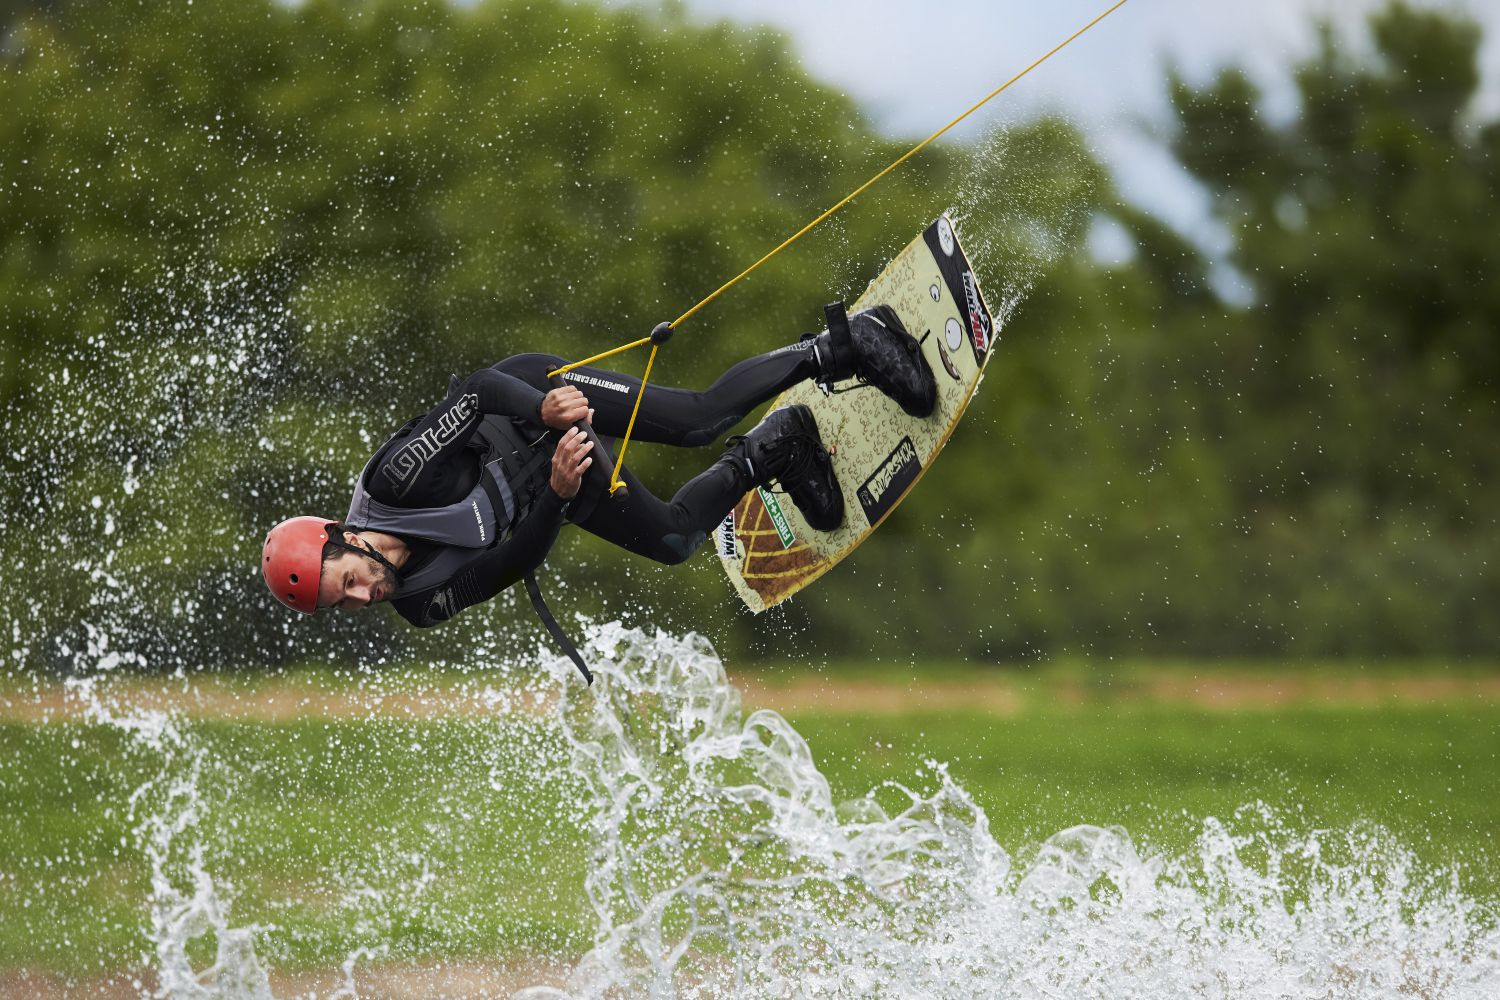 Man enjoying an action-packed experience at Cables Wake Park in Penrith, Sydney west